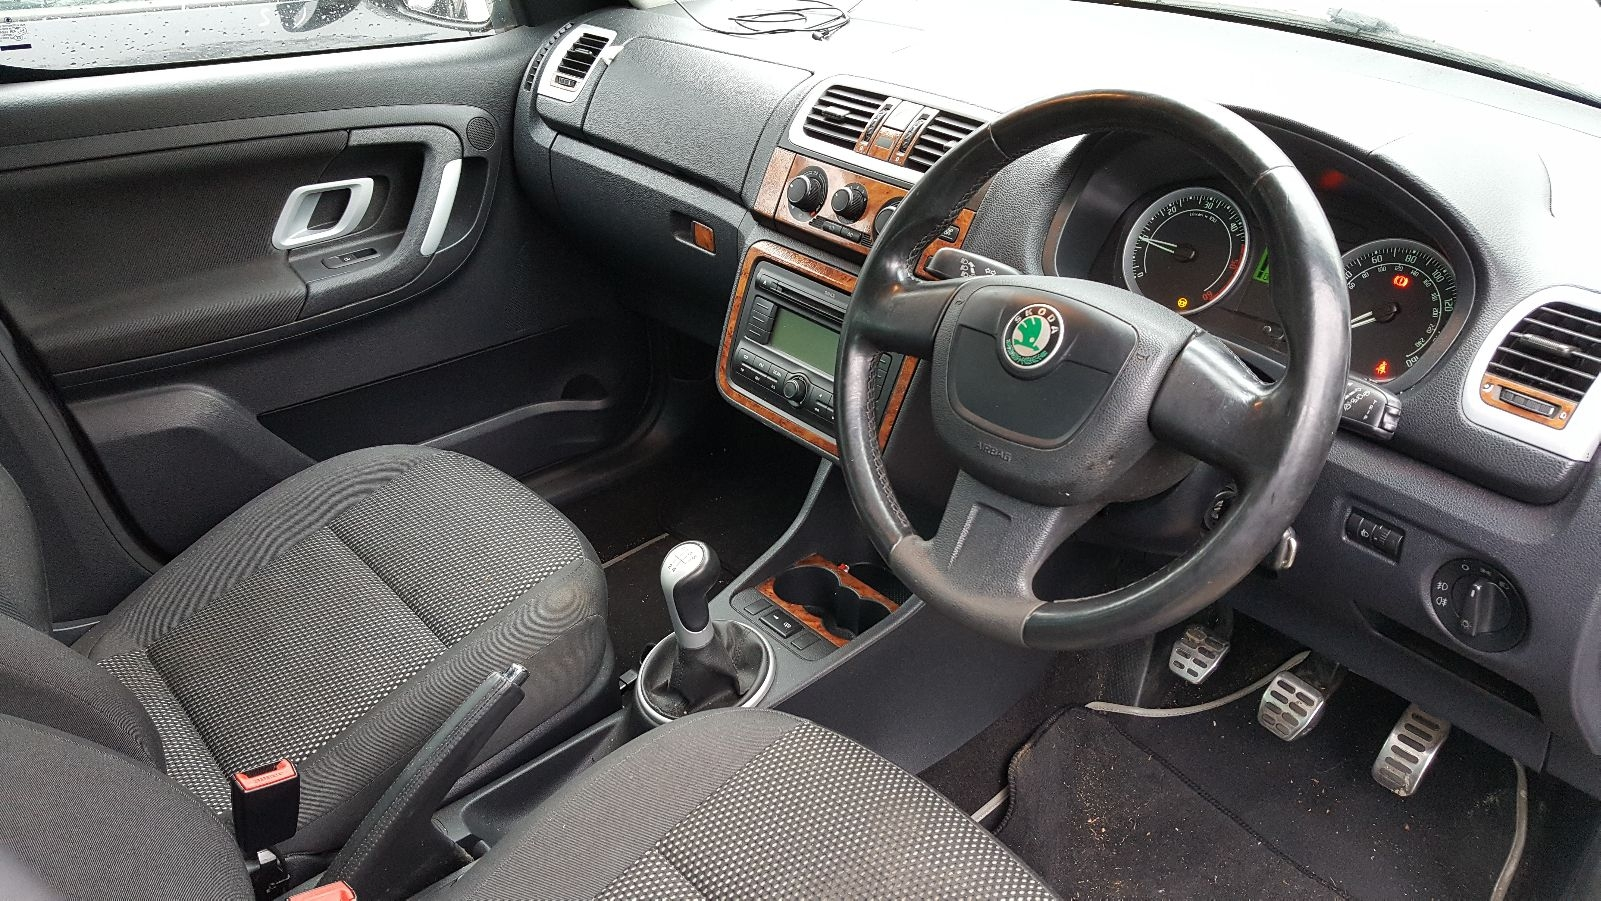 Image for a 2009 Skoda Roomster 1.9 Diesel BSW Engine